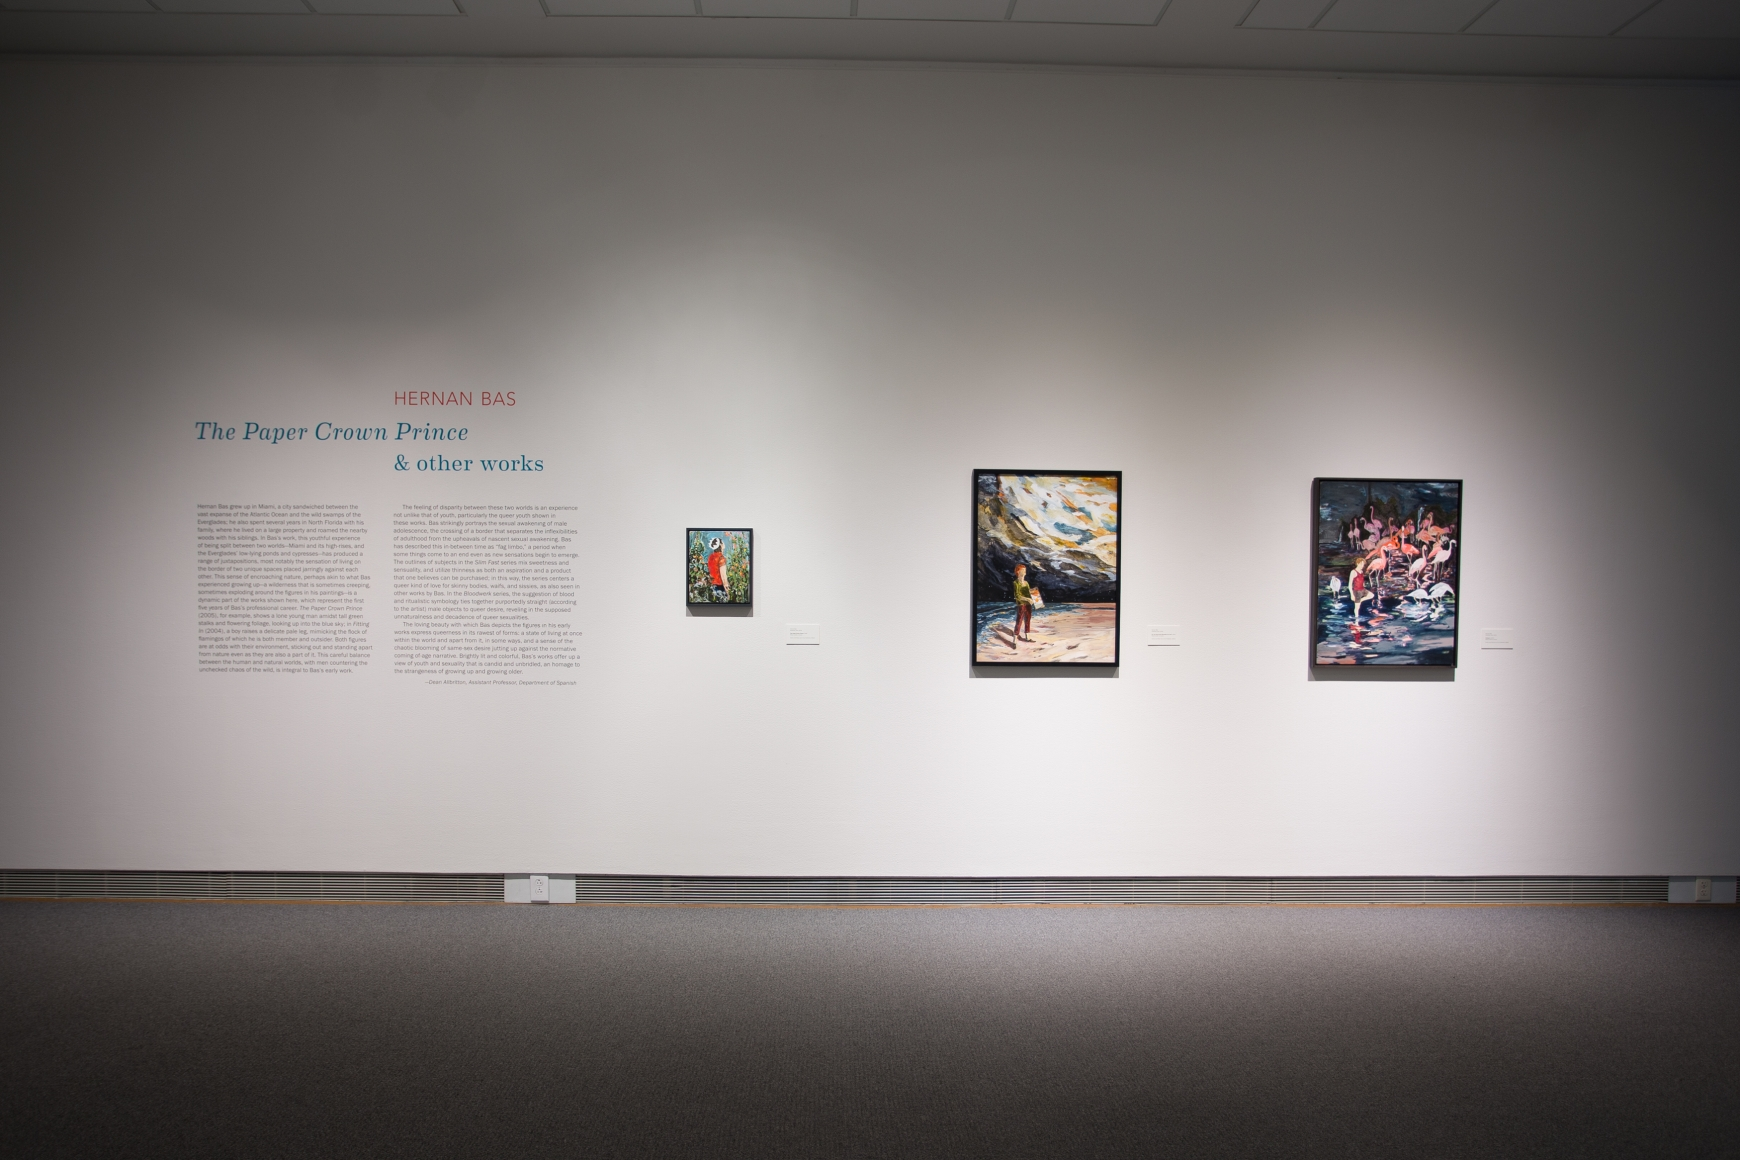 Hernan Bas:The Paper Crown Princeand Other Works, Installation view, Colby College Museum of Art,Waterville, ME